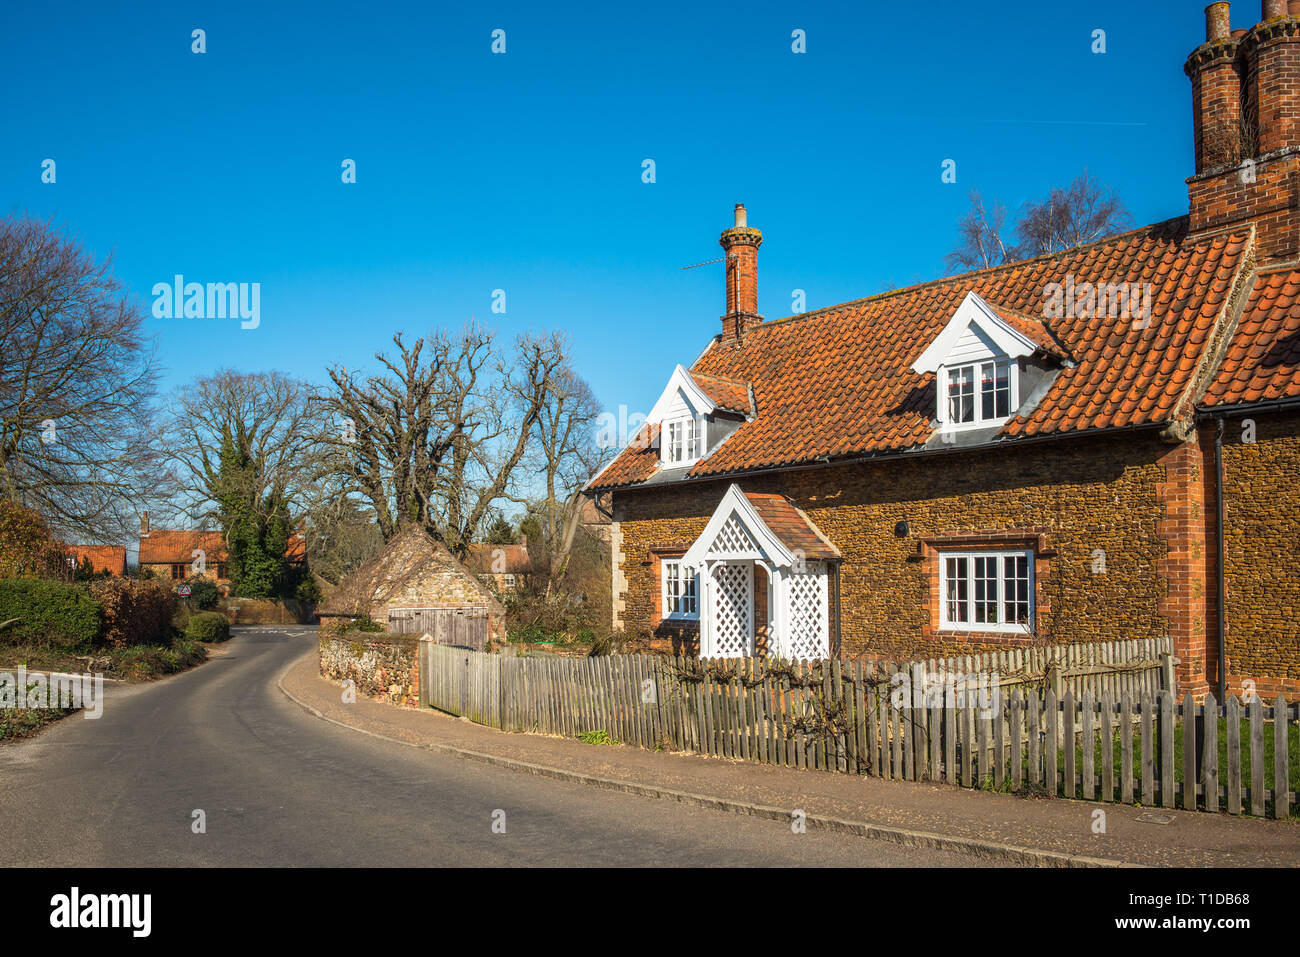 Characterful cottages in the village of Castle Rising in Norfolk, East Anglia, England, UK. Stock Photo